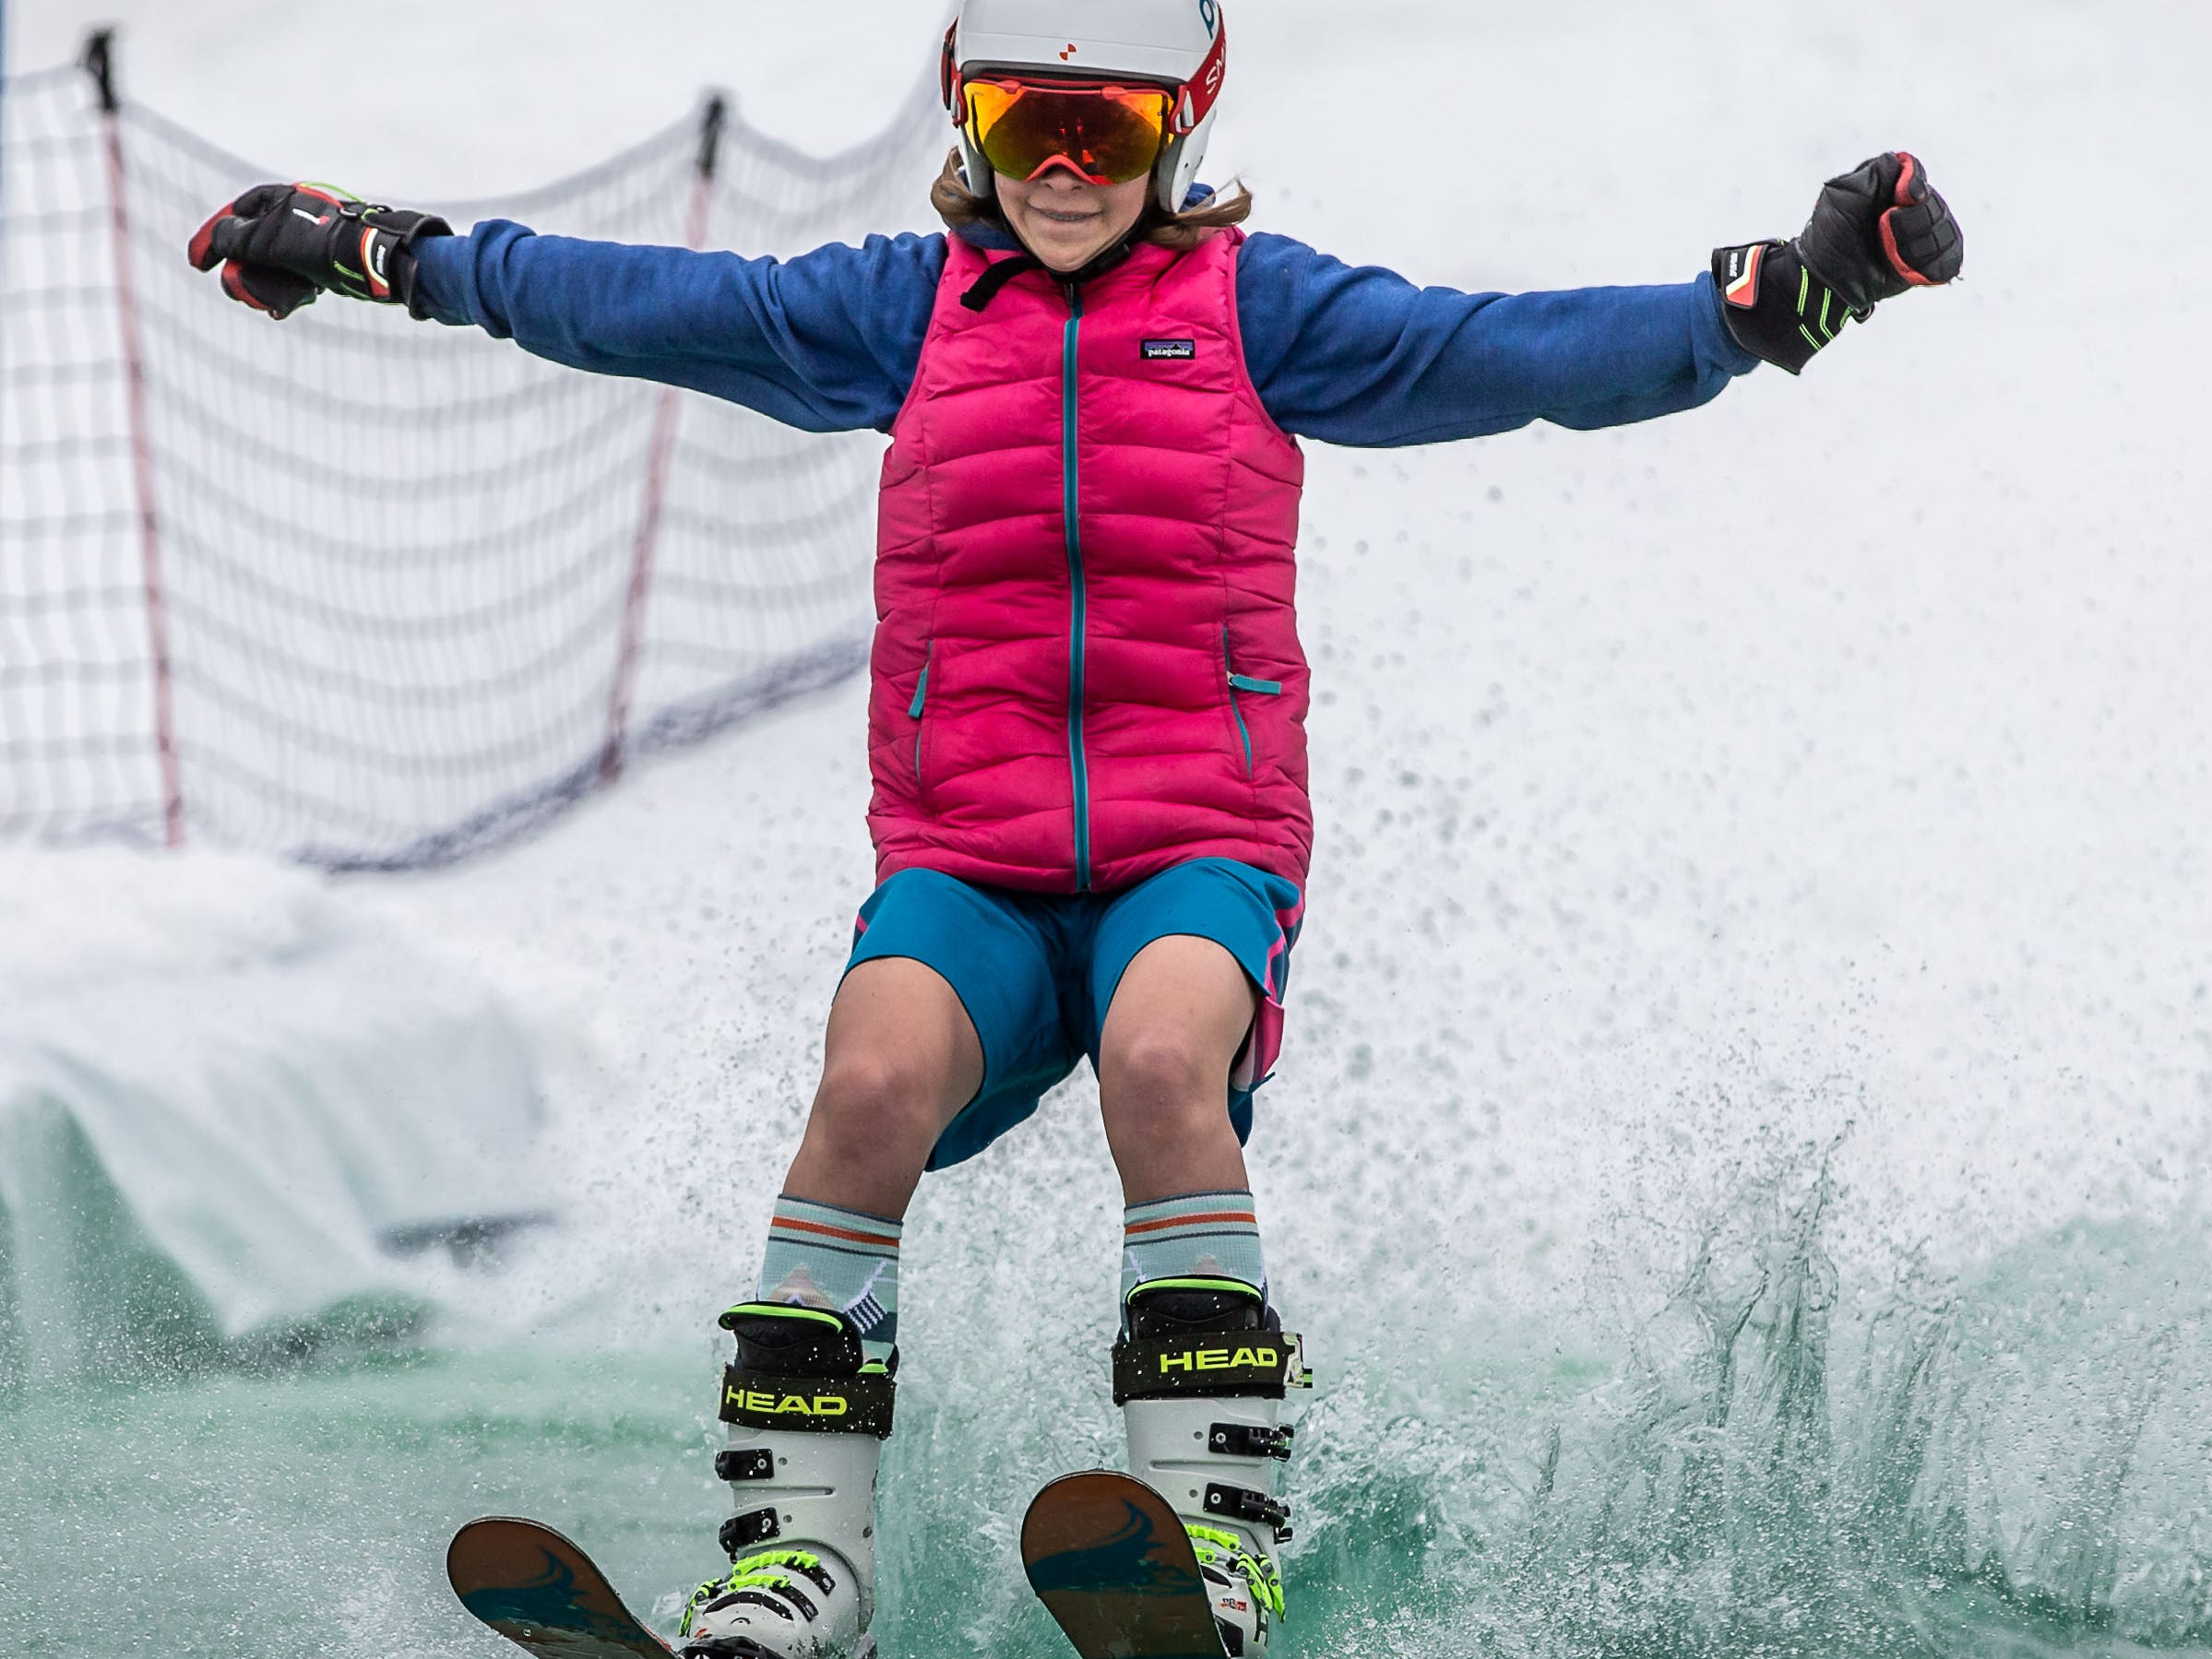 Monica Wawrzyn, 12, of Delafield shows how it's done during the 2nd annual Pond Skim at Ausblick Ski Hill in Sussex on Saturday, April 6, 2019. The pond skim is held on the last day of the season as club members celebrate another fun-filled year on the slopes.